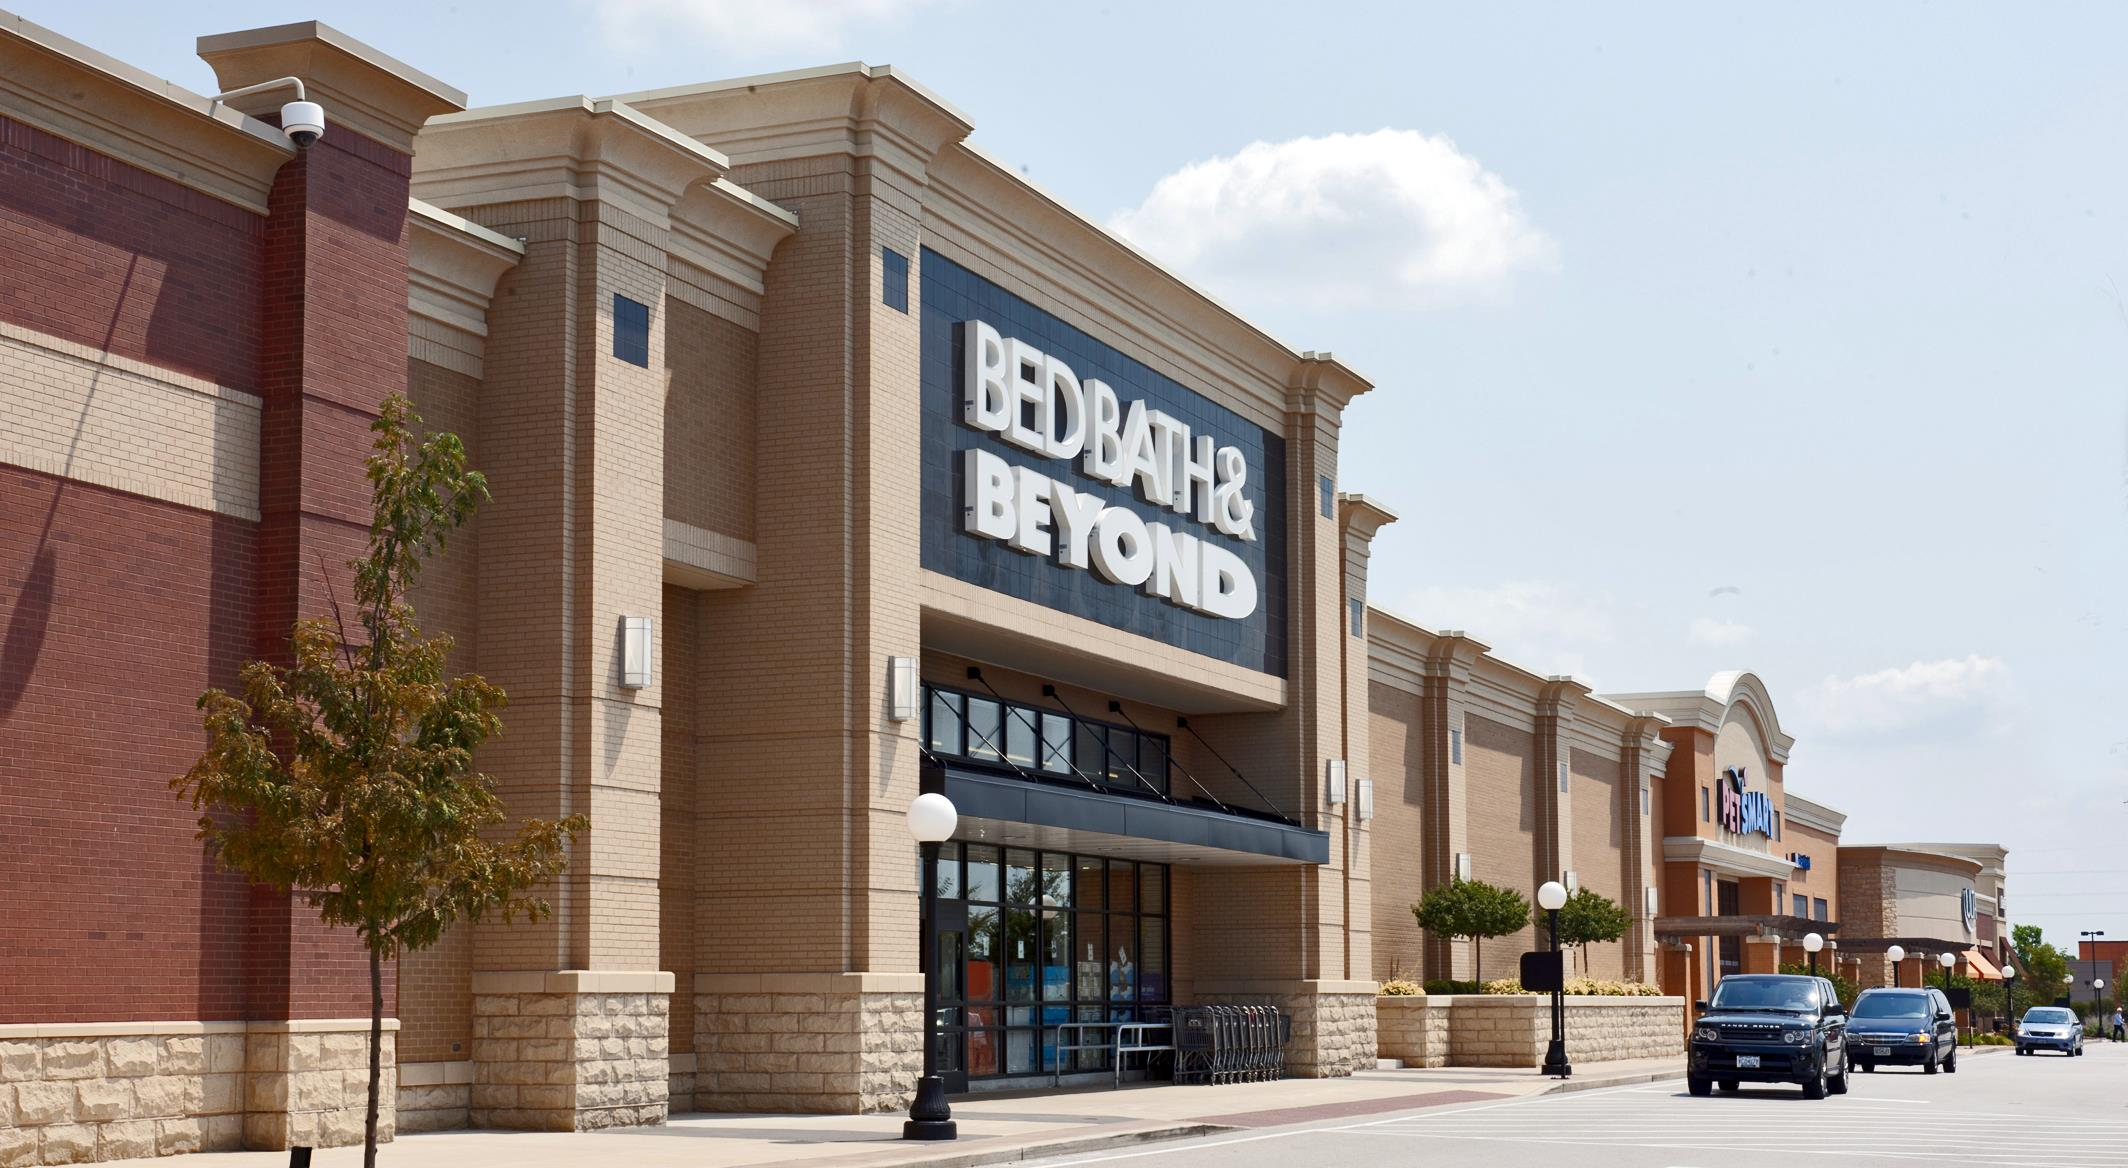 Bed Bath & Beyond at Manchester Highlands